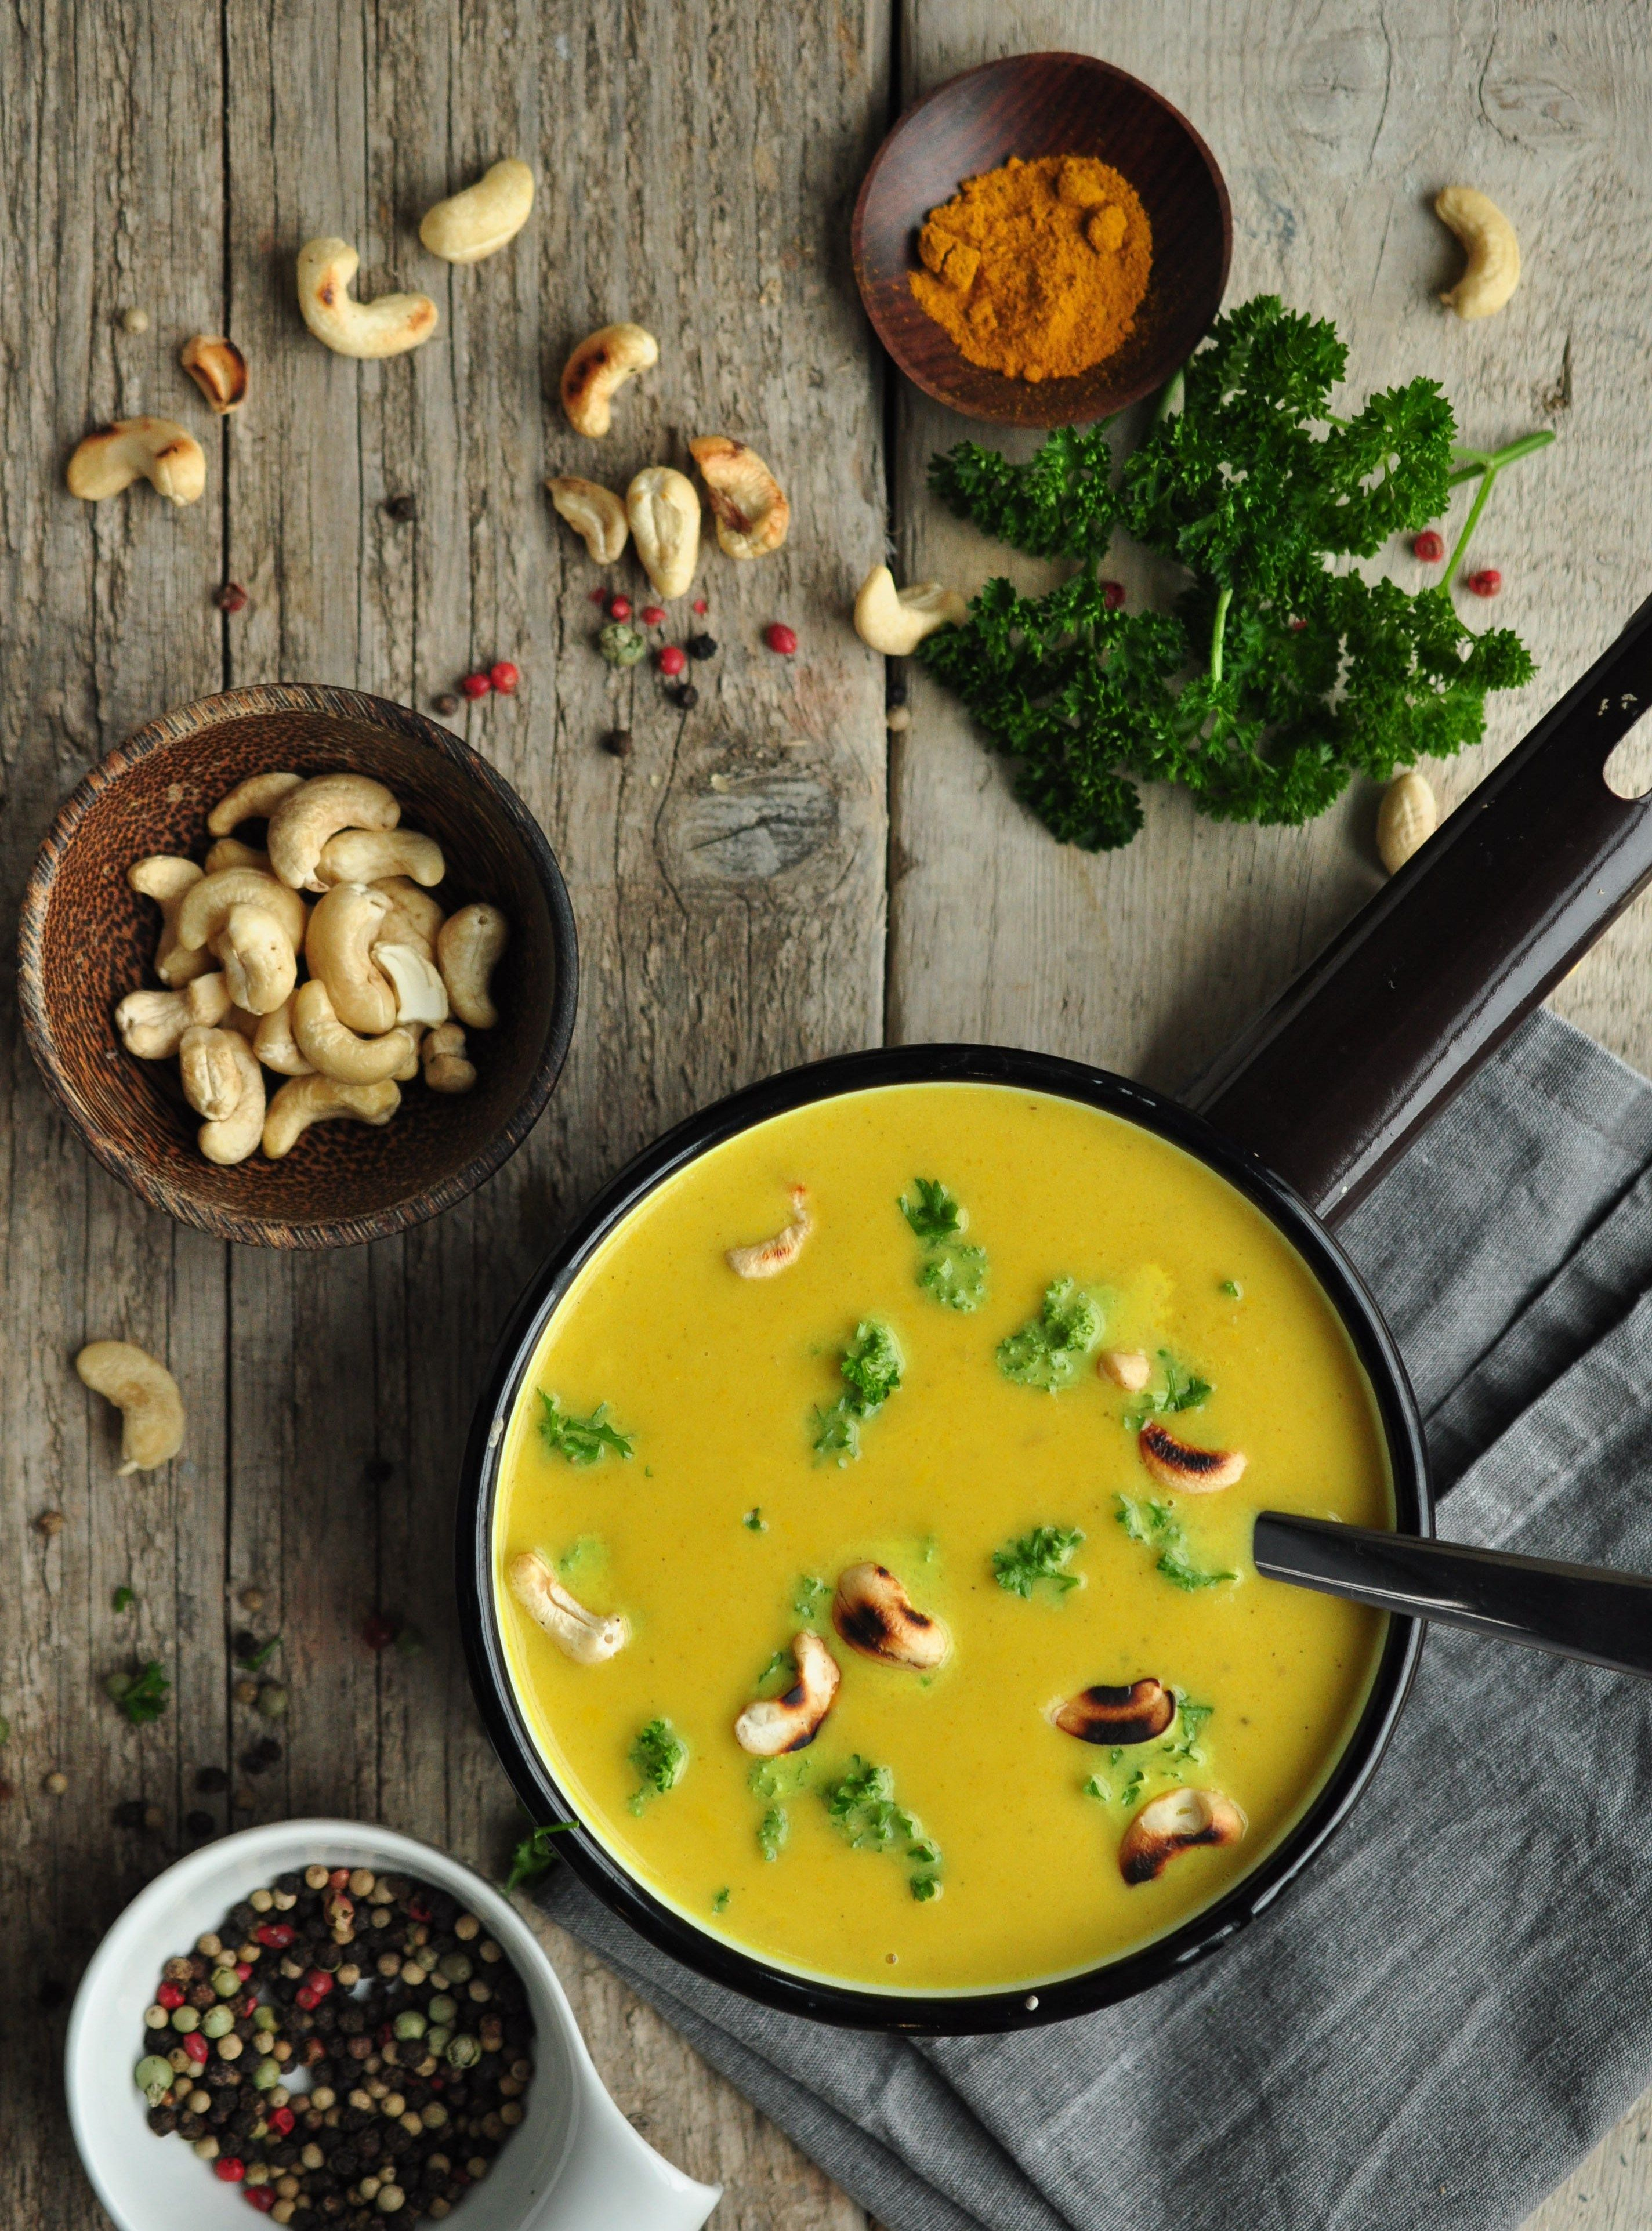 Photo of Zucchini-Curry-Cremesuppe mit gerösteten Cashewkernen | grünesser